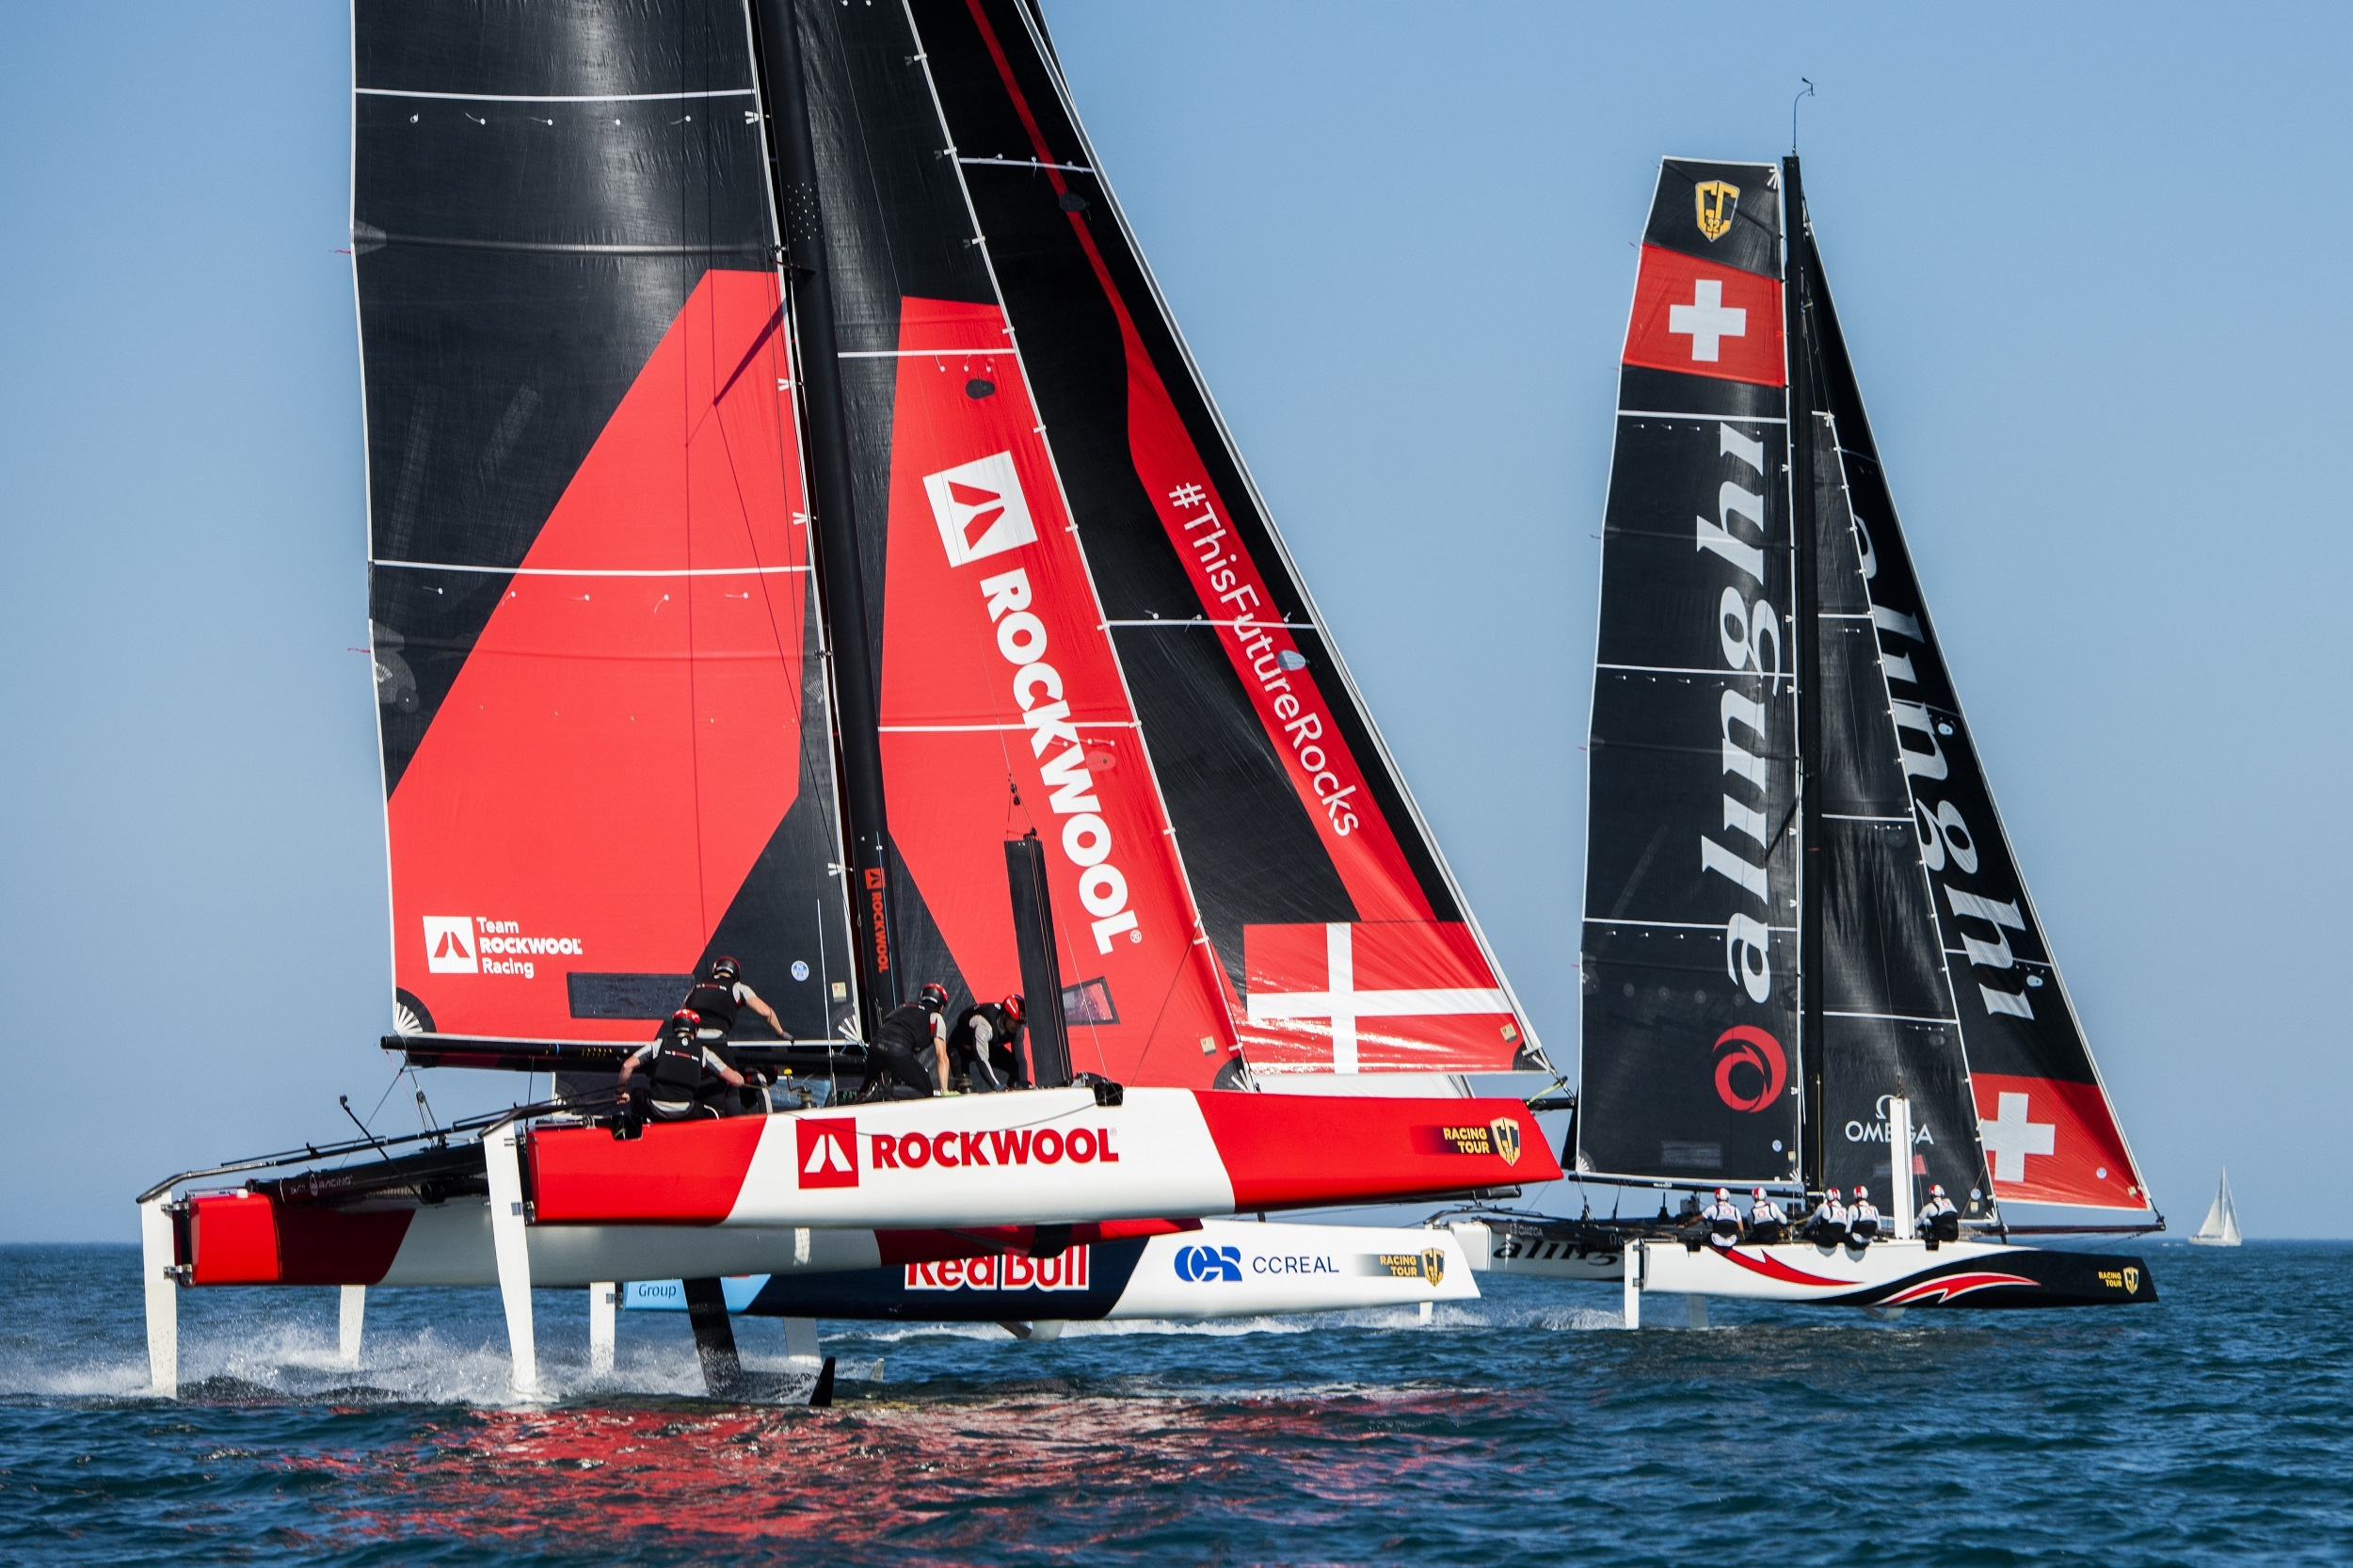 Alinghi leads Red Bull Sailing Team and Team Rockwool Racing down the reach.